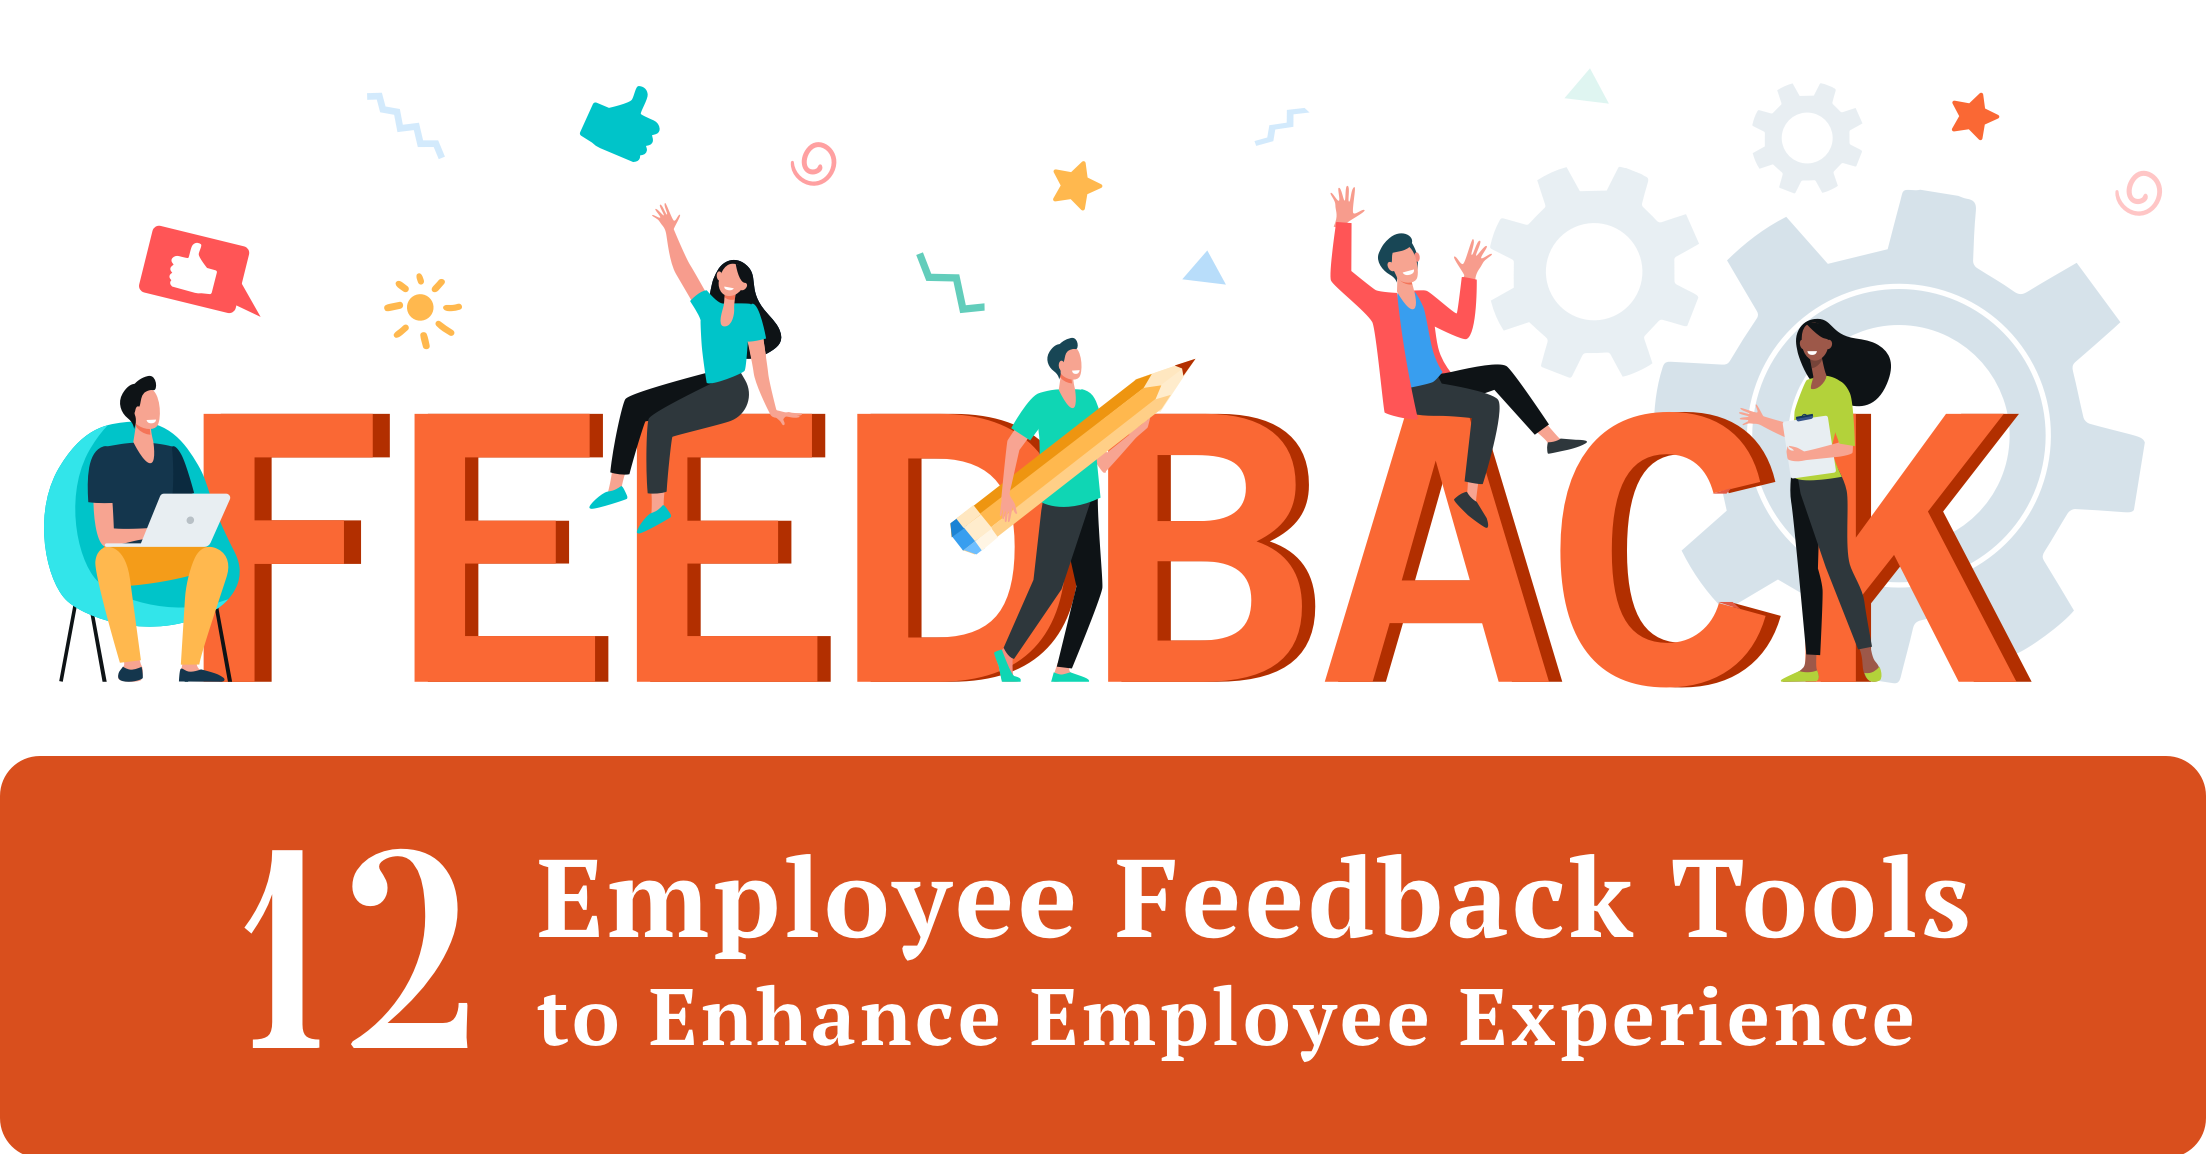 12 Employee Feedback Tools to Enhance Employee Experience